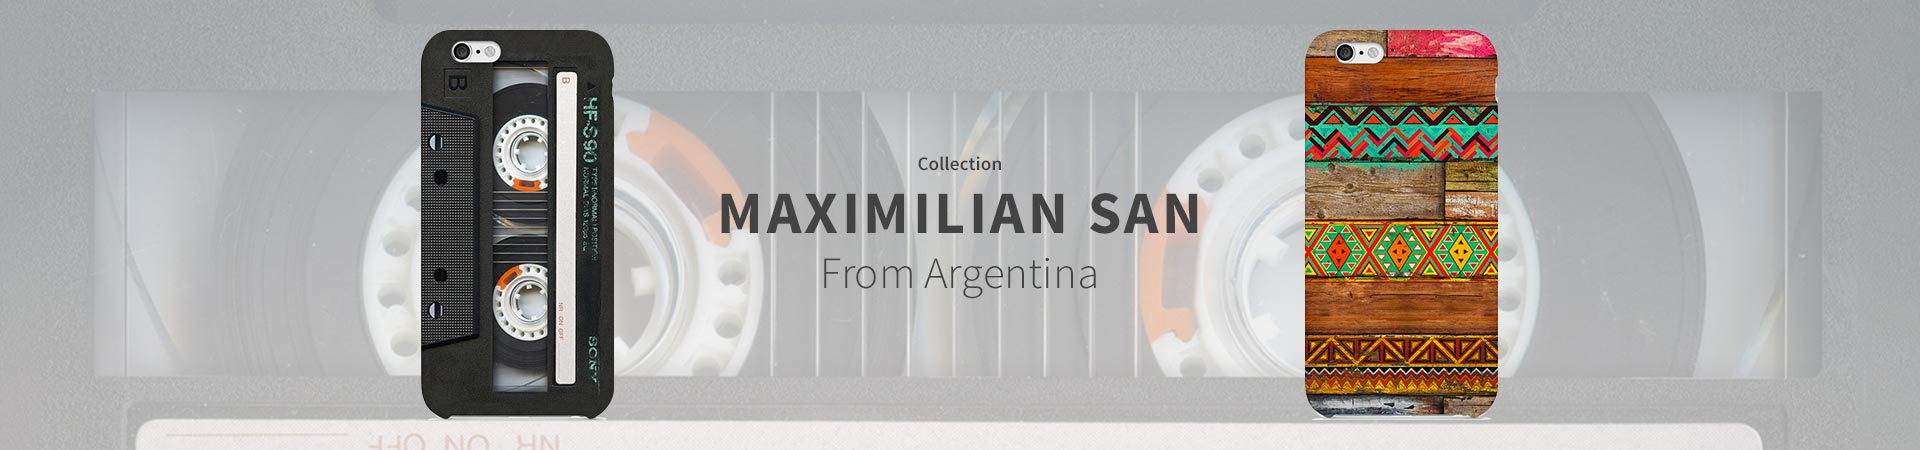 Collection Maximilian San